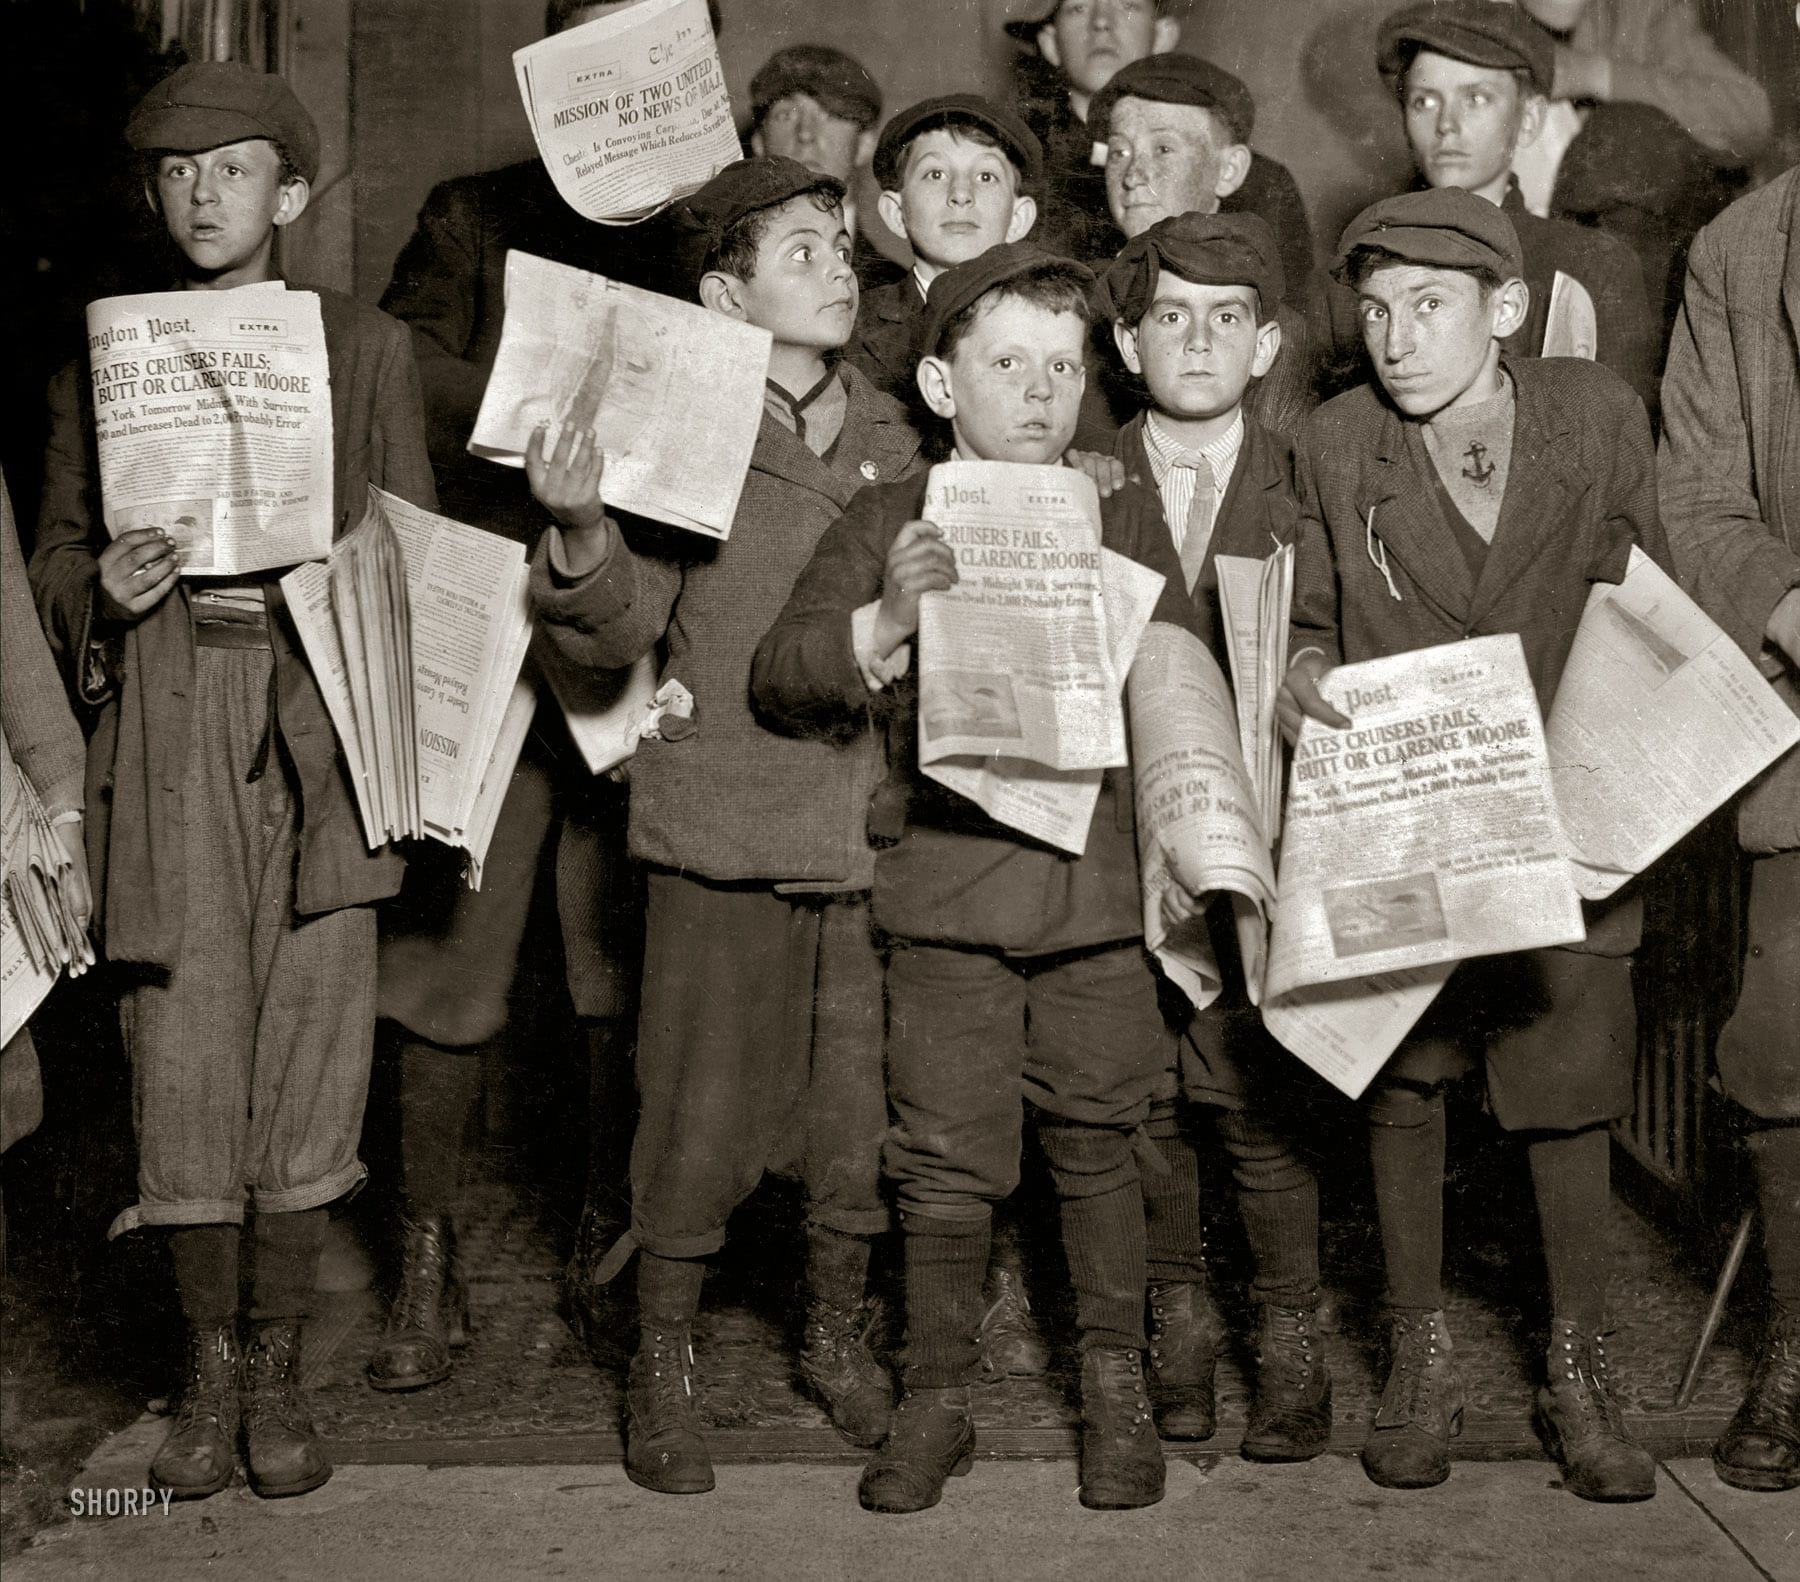 "Washington, D.C. -- news of the Titanic and possible survivors. ""After midnight April 17, 1912, and still selling extras, 12th Street near G. There were many of these groups of young newsboys selling very late these nights. Youngest boy in the group is Israel Spril (9 years old), 314 I Street N.W.; Harry Shapiro (11 years old), 95 L Street N.W.; Eugene Butler, 310 (rear) 13th Street N.W. The rest were a little older."" (Shorpy)"